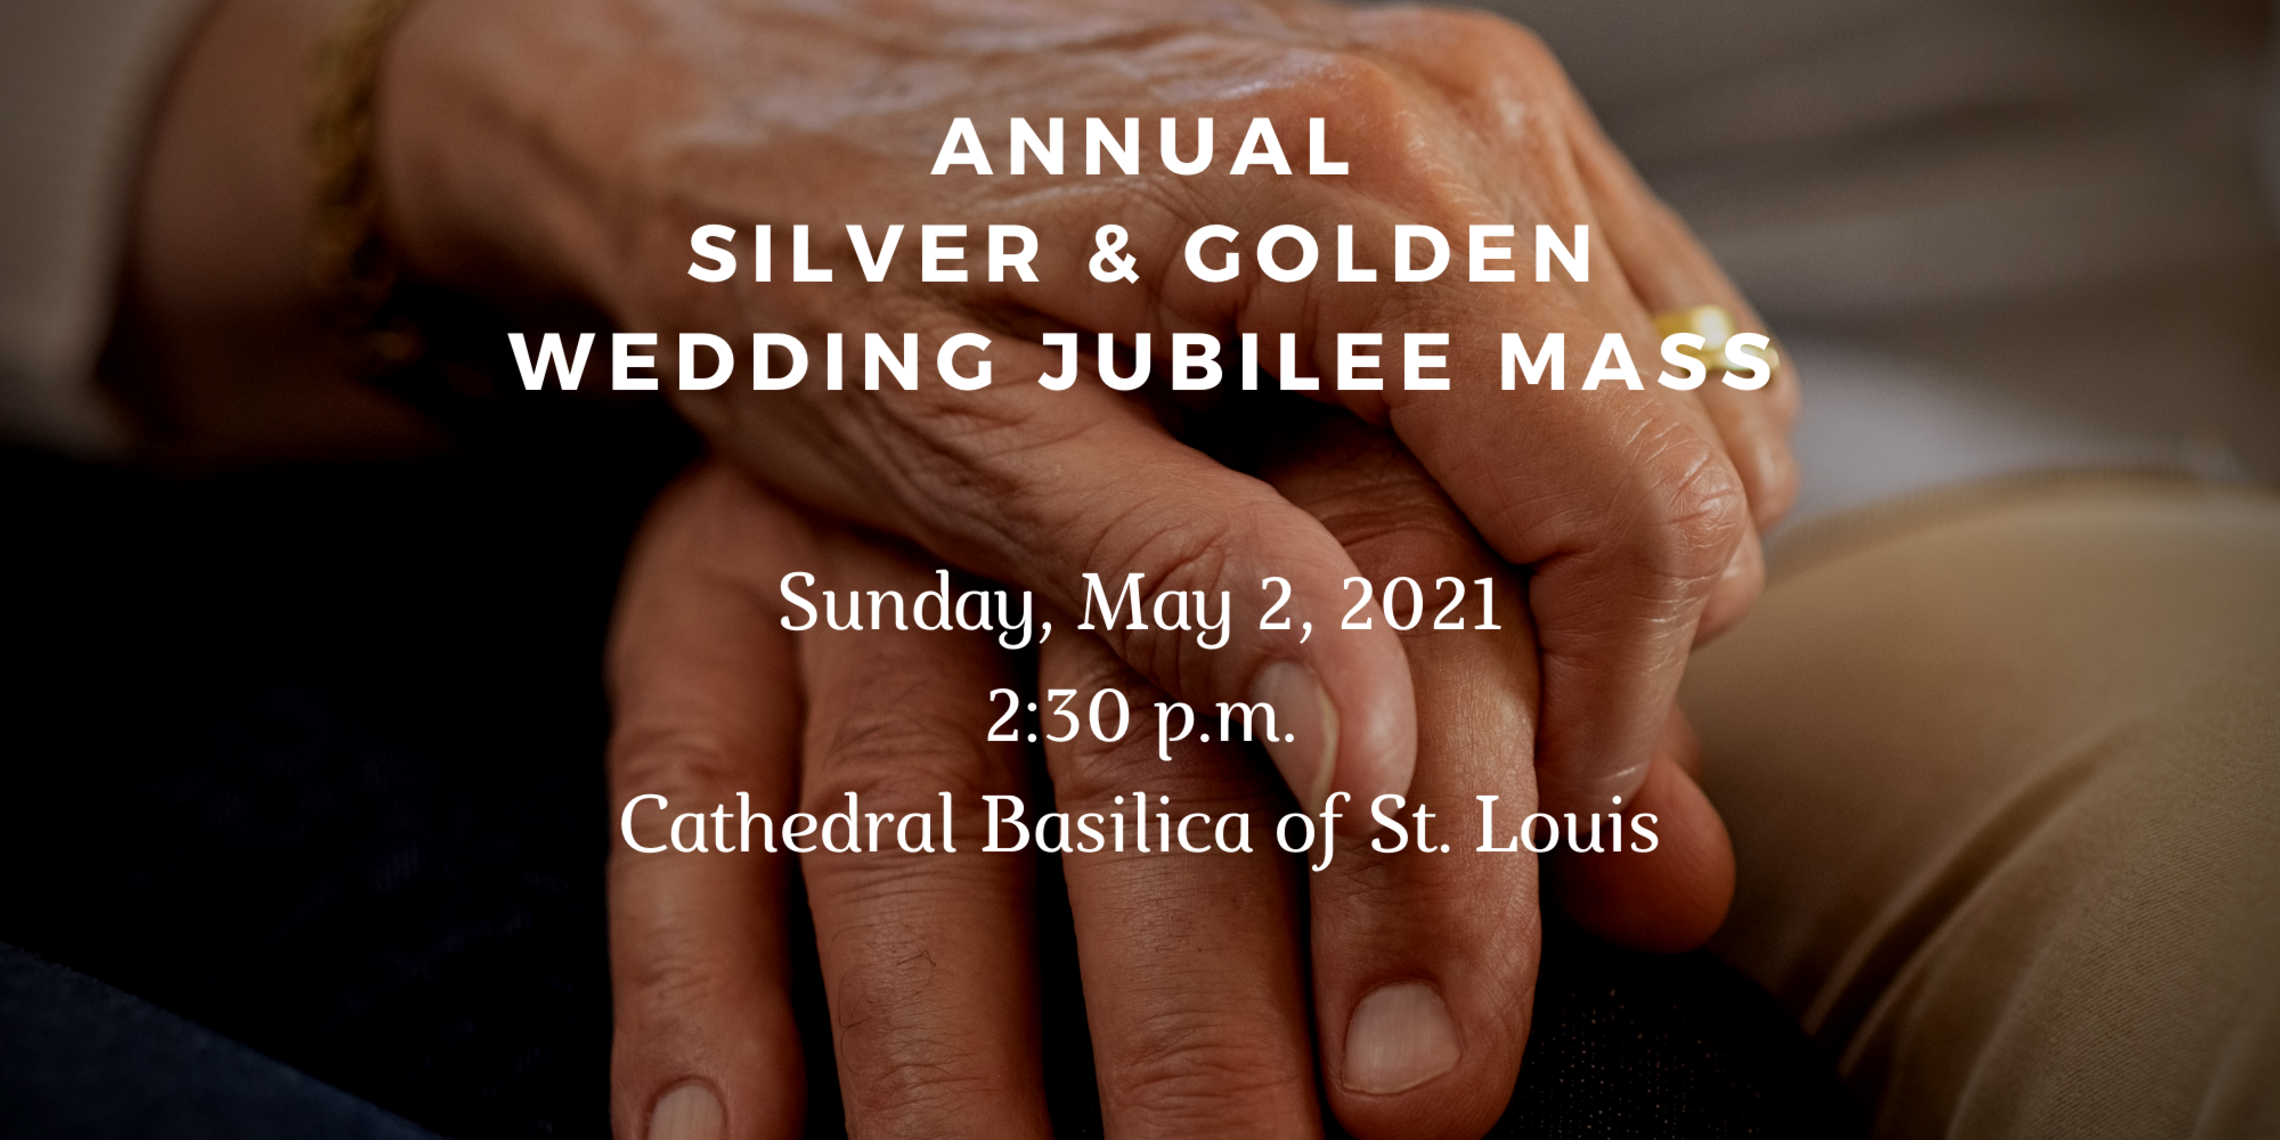 Annual Wedding Jubilee Mass